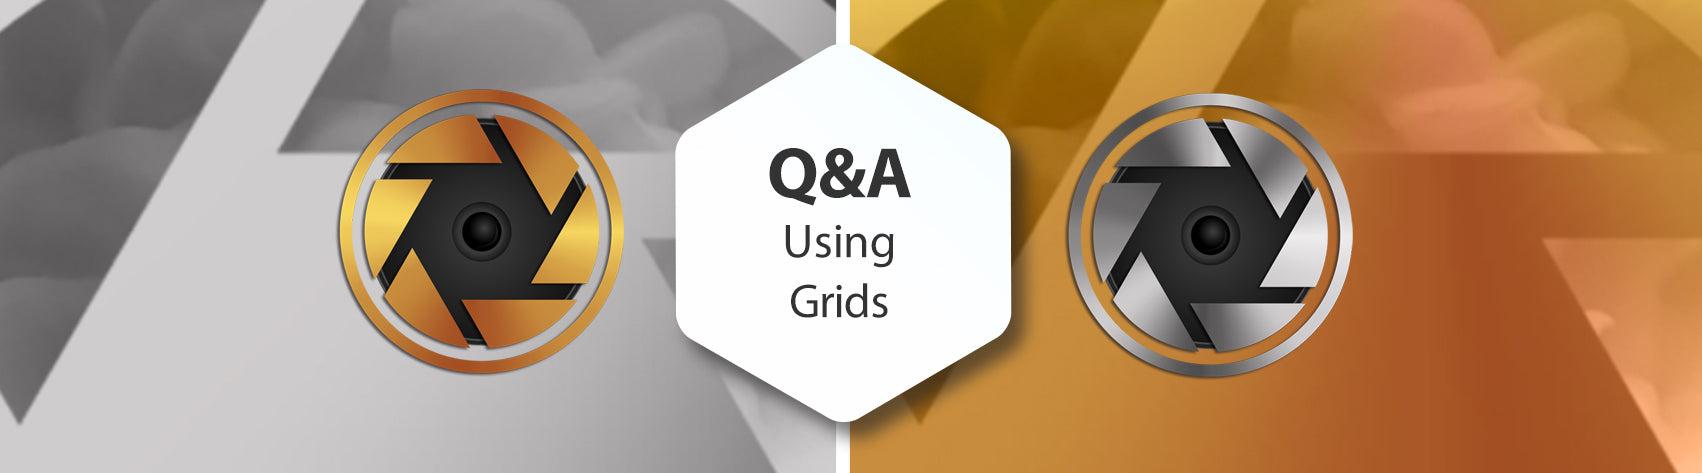 Q&A Using Grids